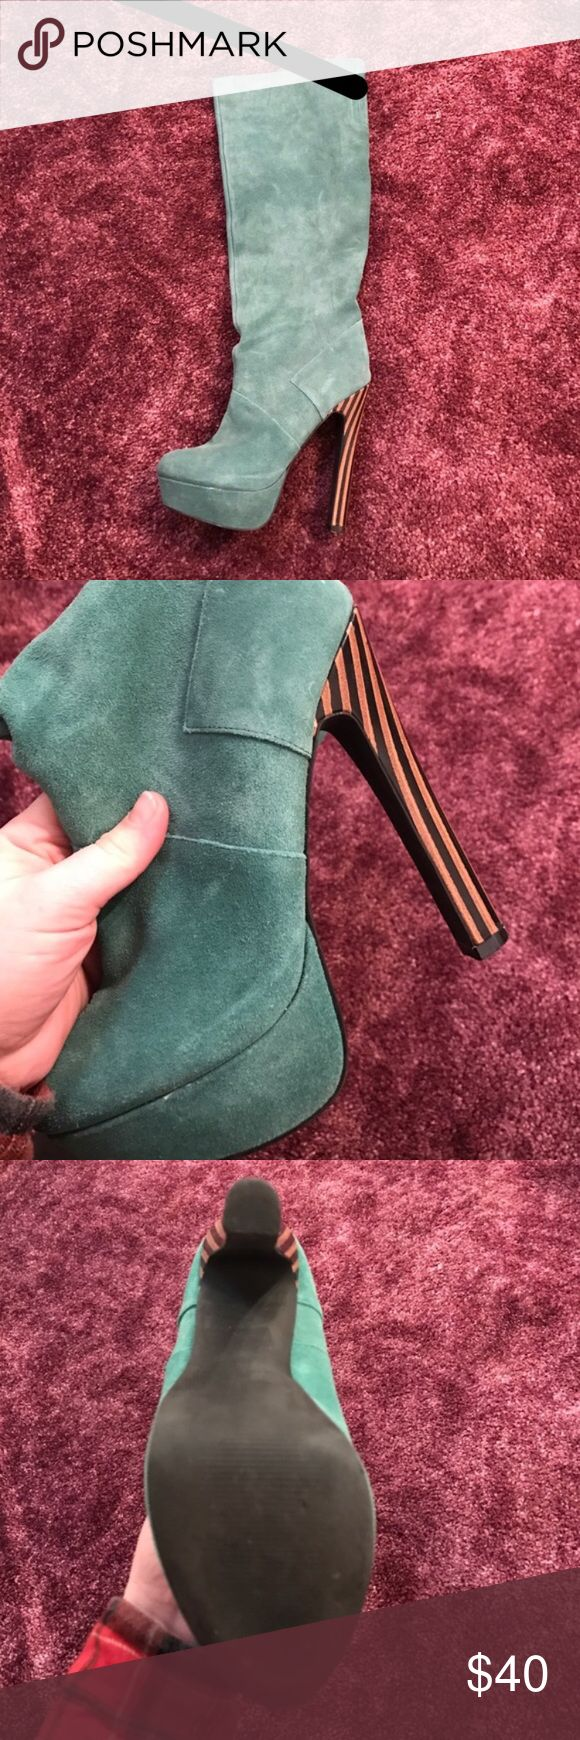 Teal colored Colin Stuart Heeled Boots Absolutely gorgeous suede boots. The color is very unique. They work great with black dress and jeans. Hardly any wear. Great used condition. Colin Stuart Shoes Heeled Boots